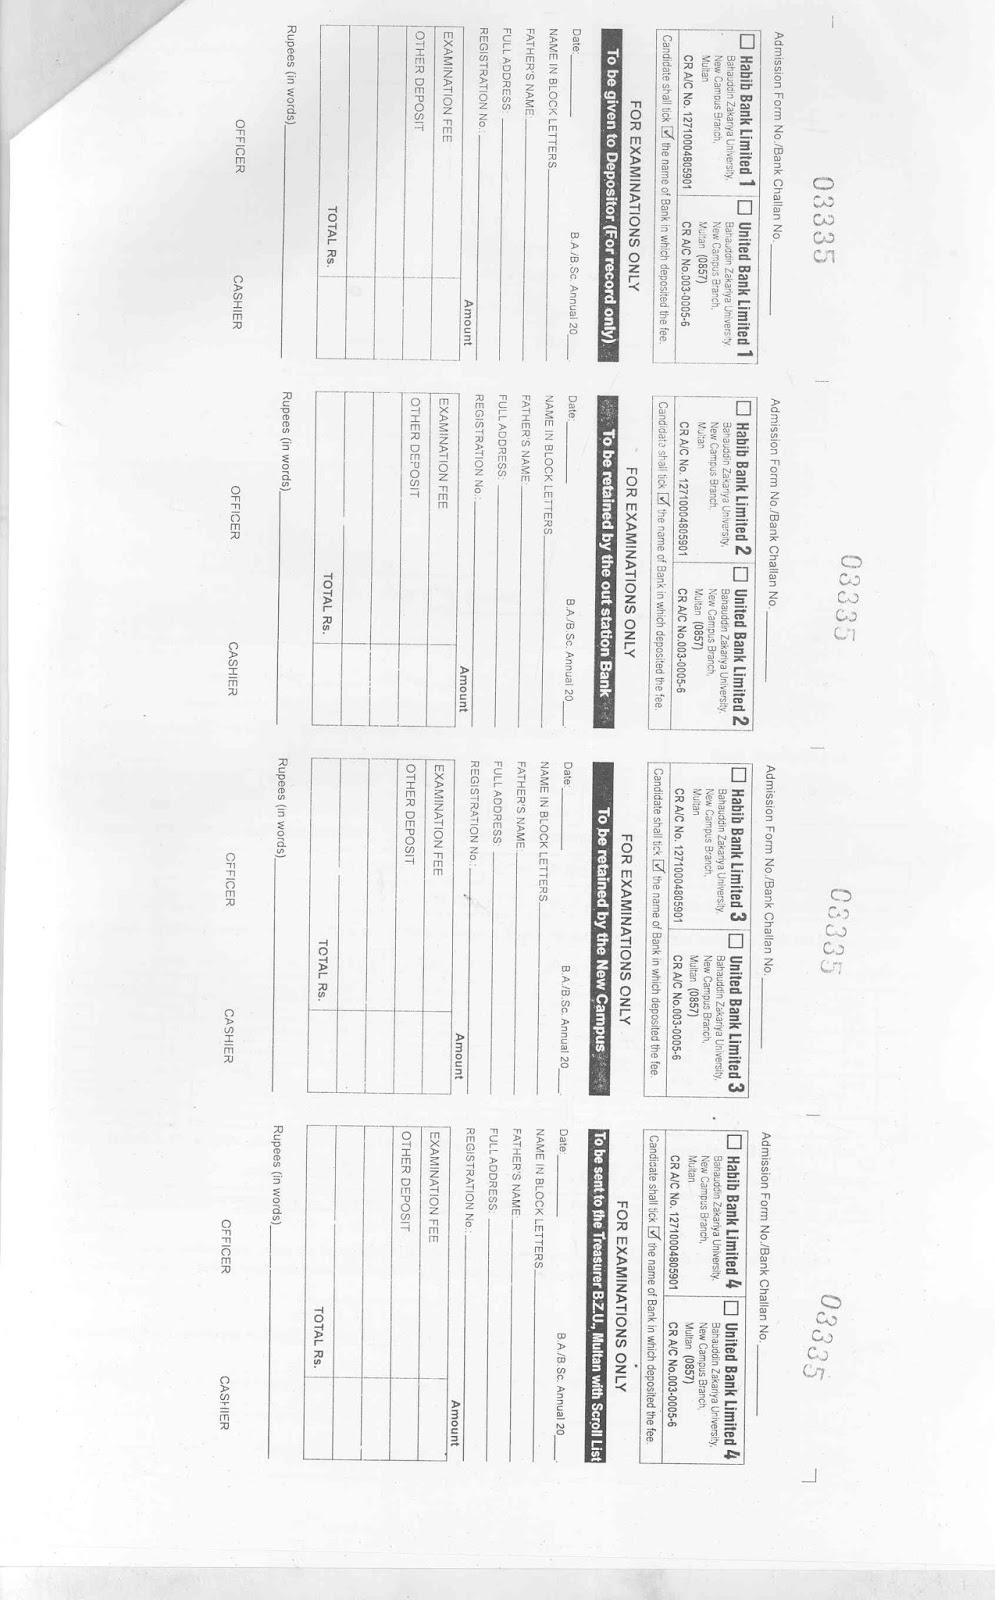 bank challan form punjab university lahore download « woek